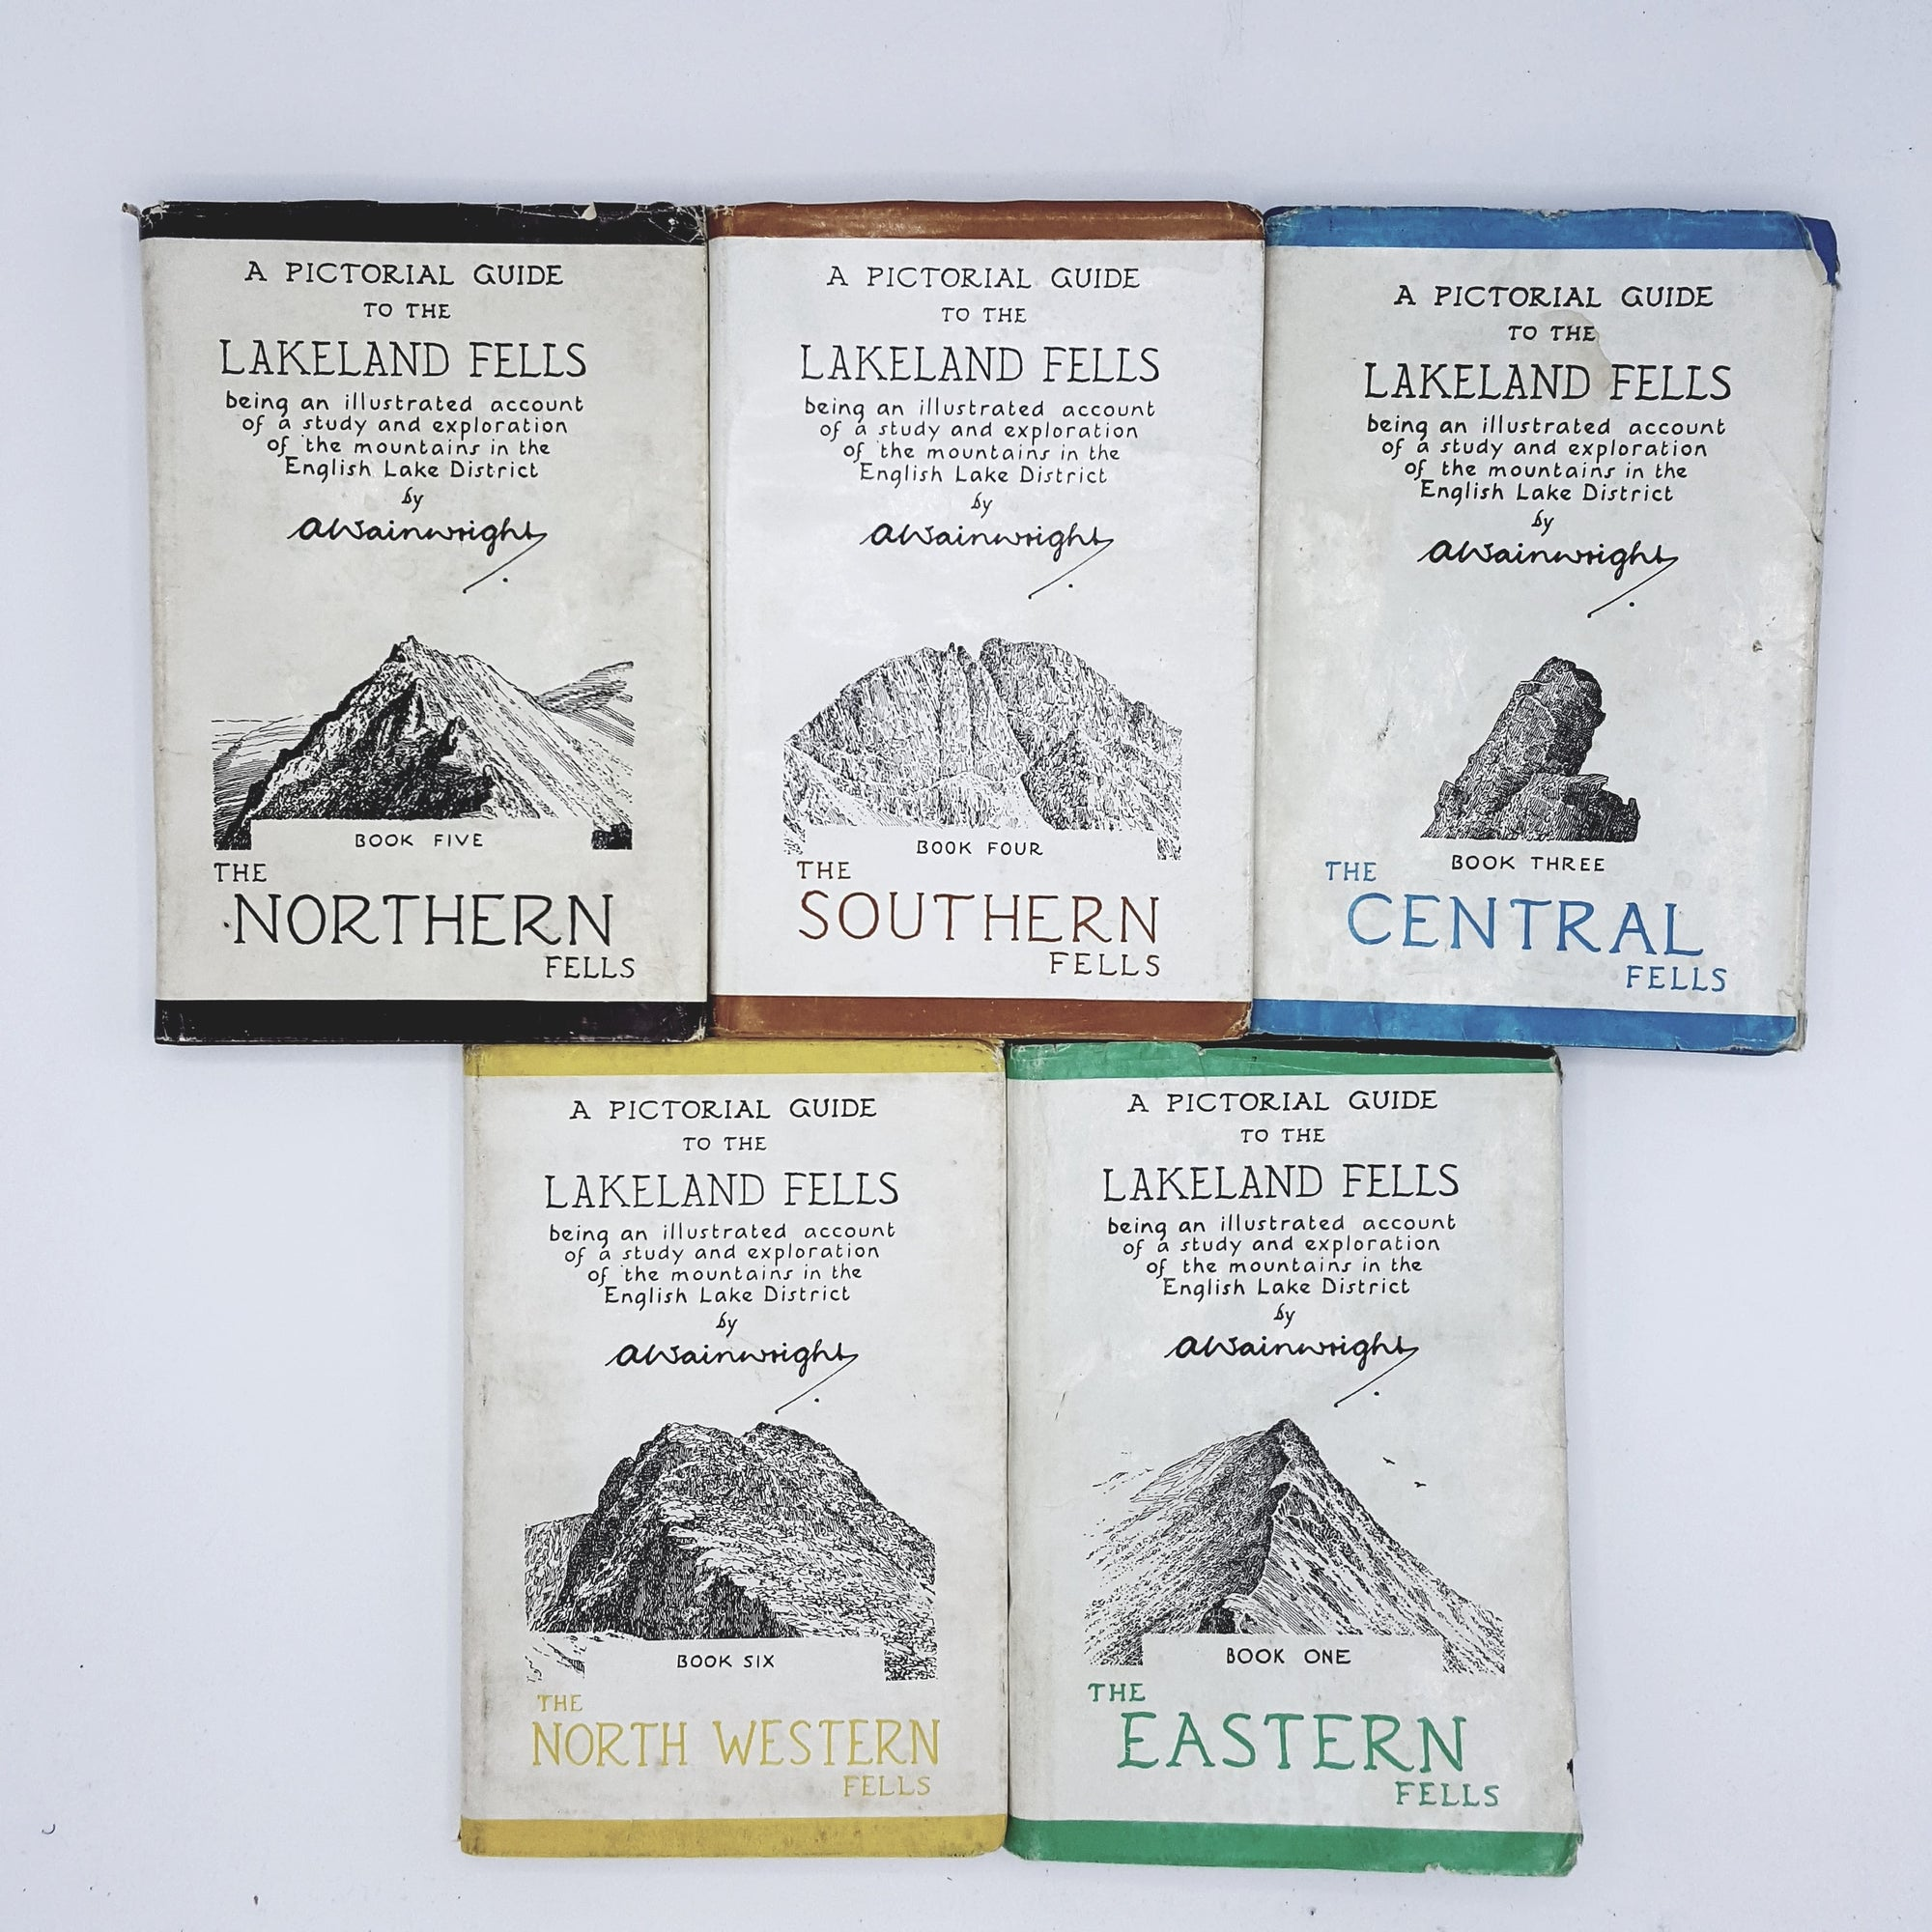 A Pictorial Guide to the Lakeland Fells Collection 1954 - 1967